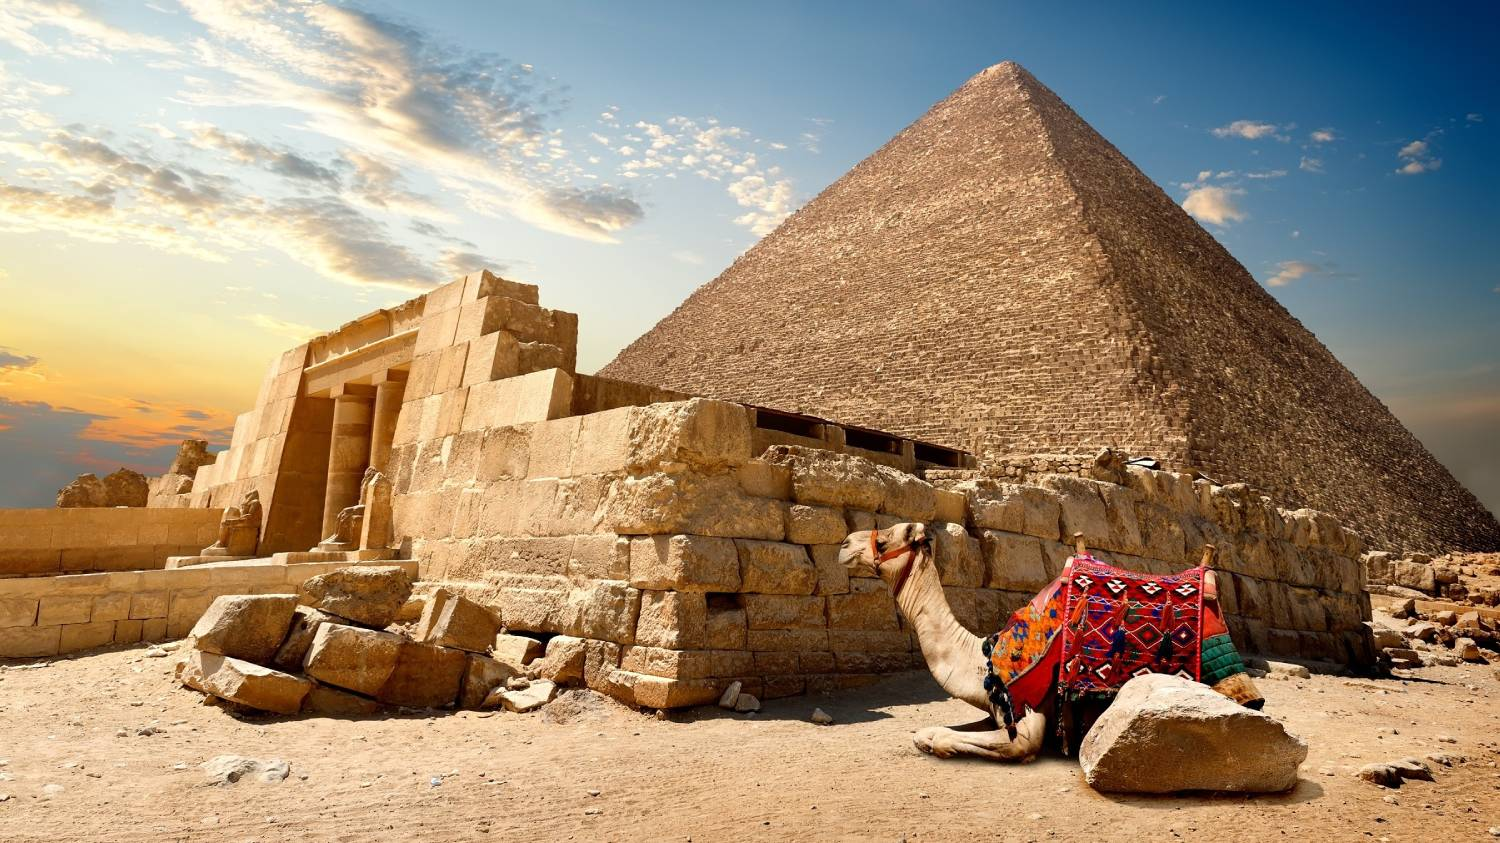 Egypt - The Best Countries To Visit In The Middle East